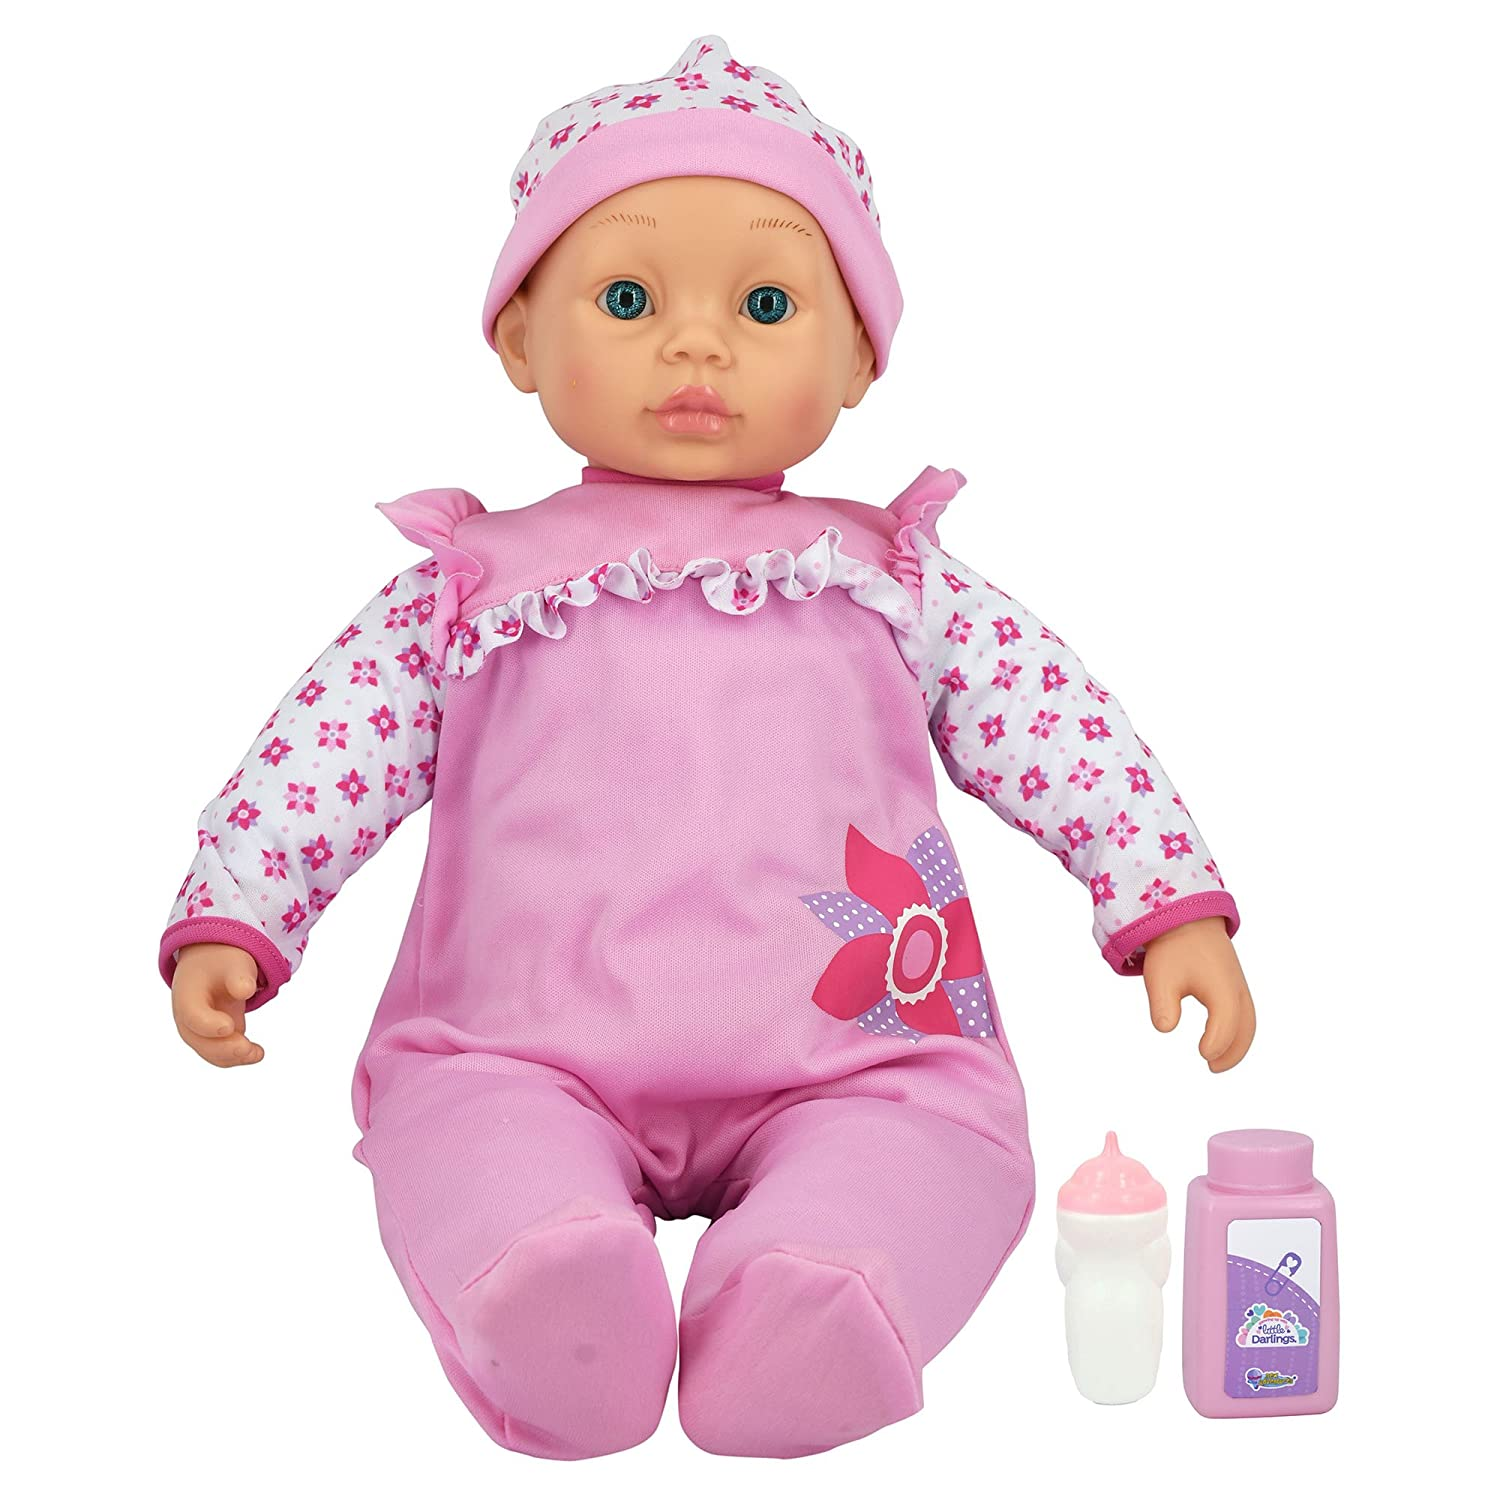 New Adventures LLC 3010-Pink Little Darlings-48cm Cuddle Baby with Accessories, Pink   B07F4GQKB2